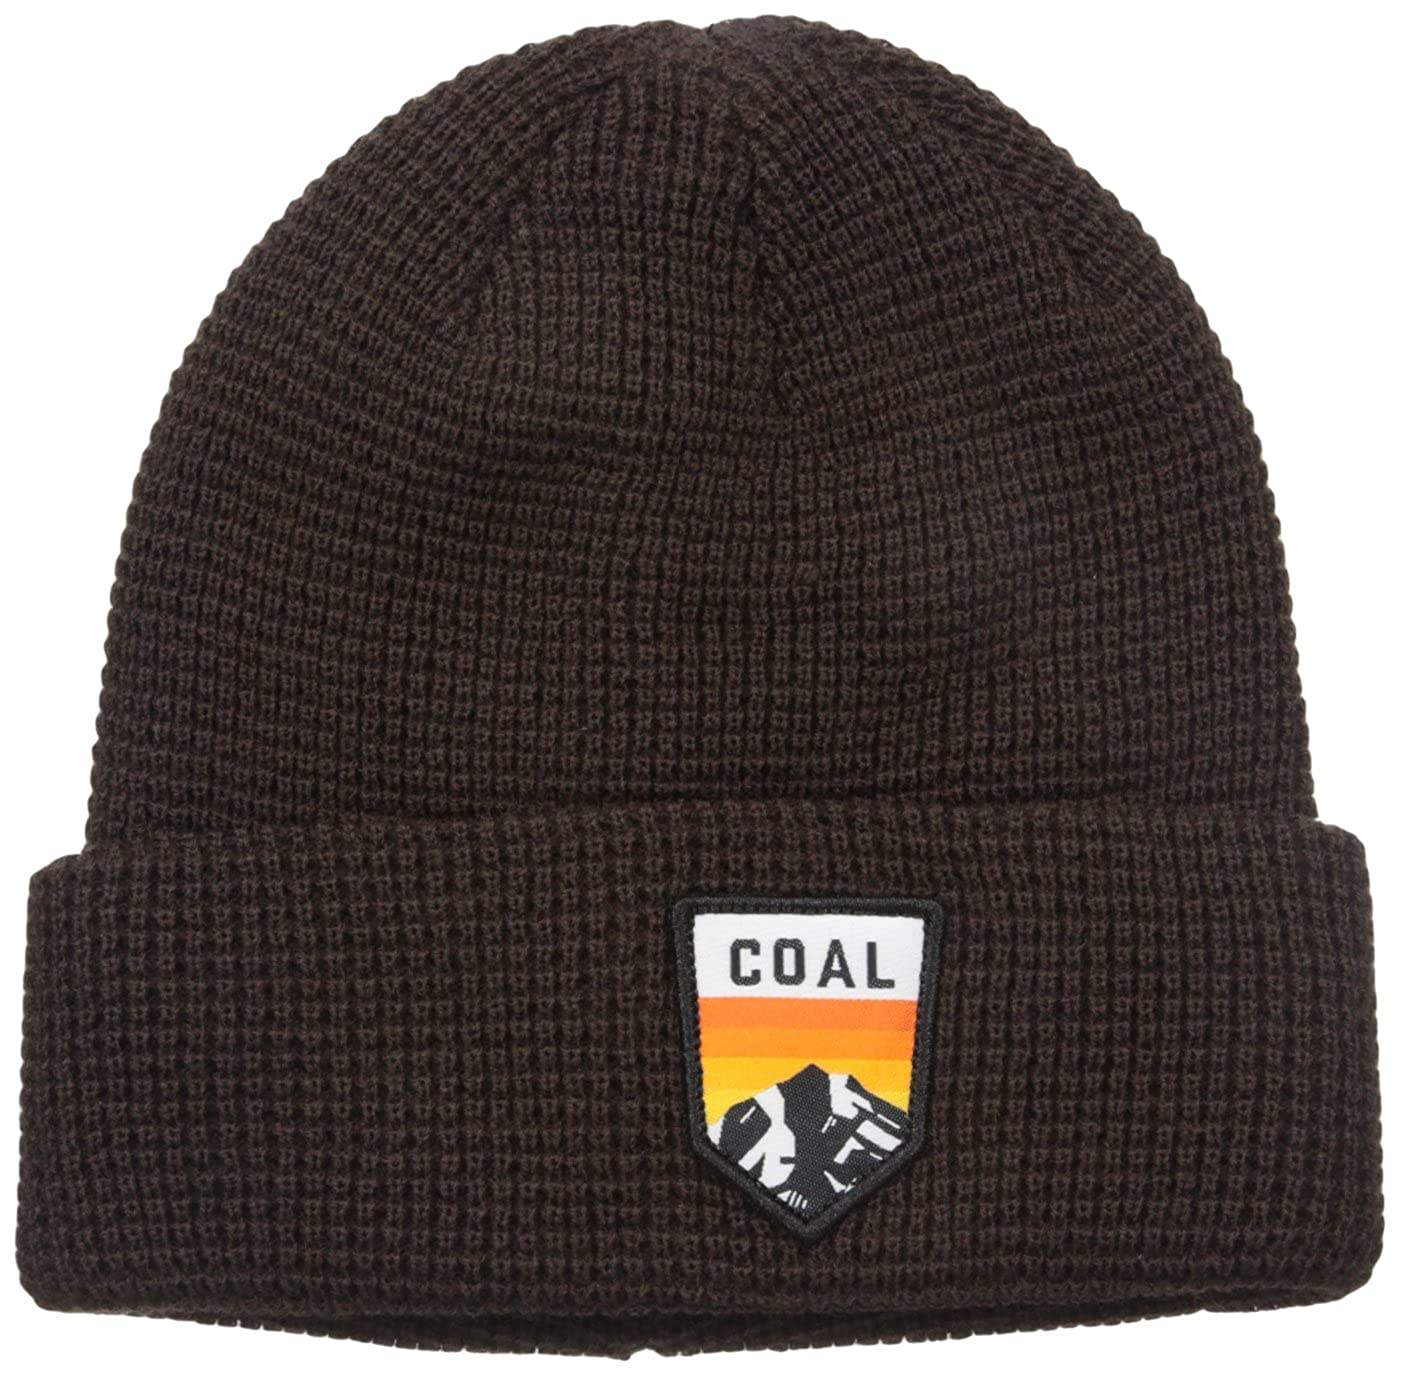 fdb91b75cdc Coal Men s the Summit Waffle Knit Beanie Cuffed Hat